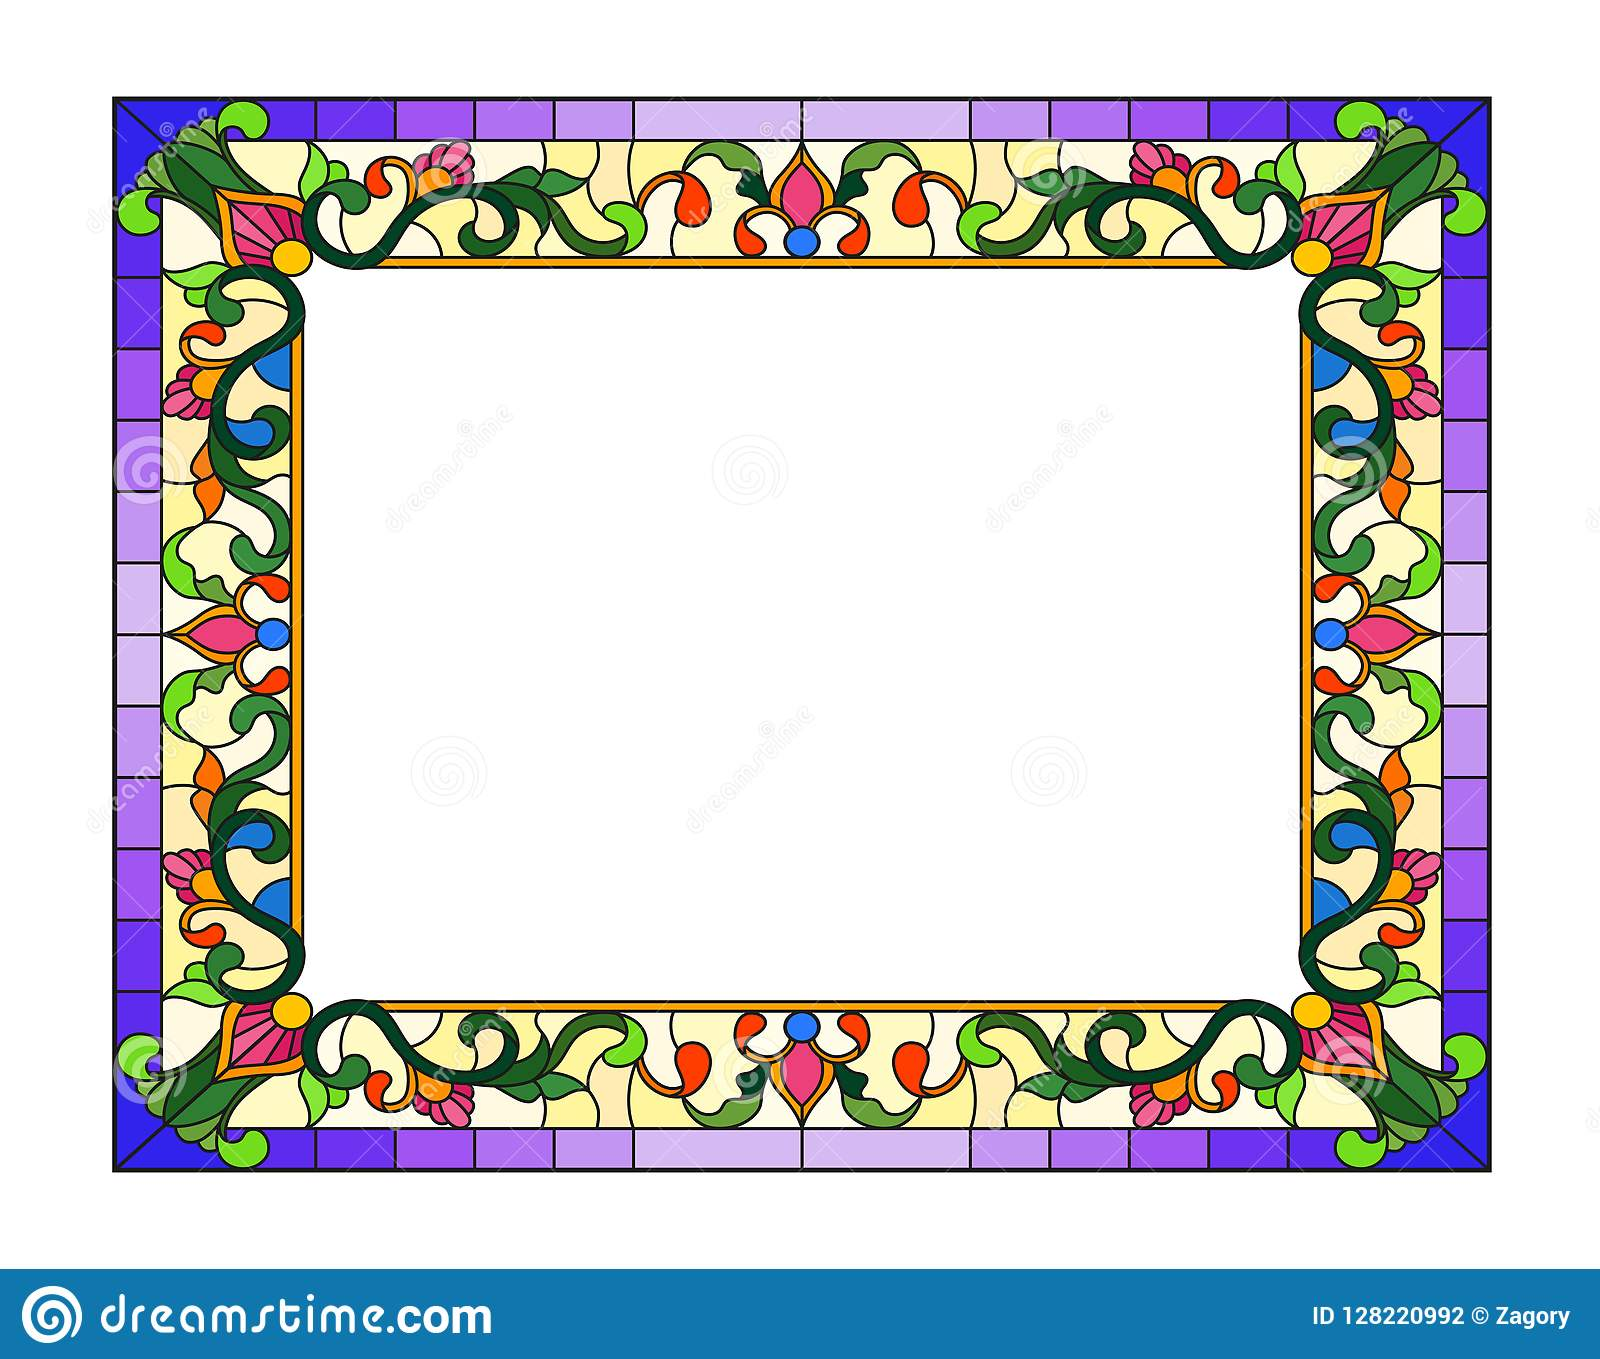 Stained Glass Illustration Flower Frame, Bright Flowers And Leaves ...